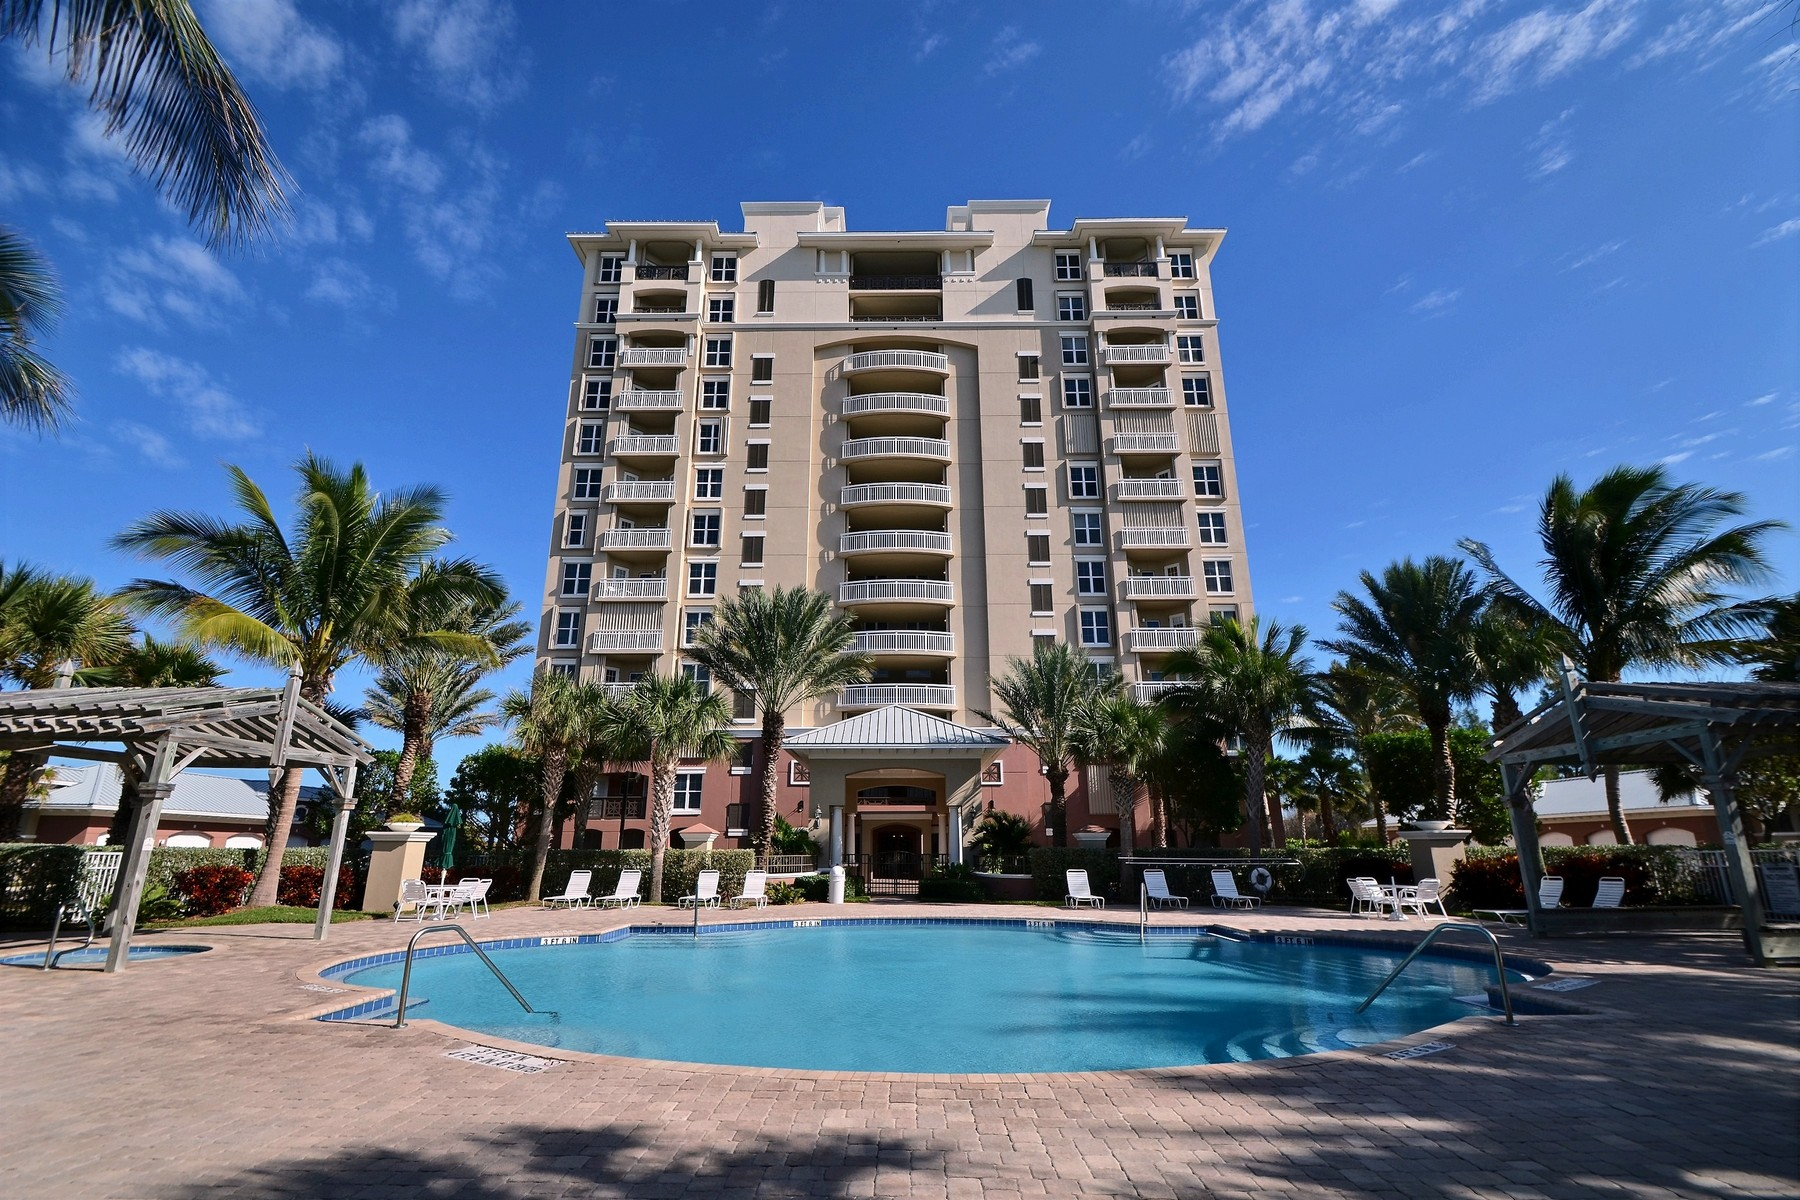 Condominium for Sale at Grand Isle Condo with Stunning Ocean Views 3702 N Highway A1A #704 Hutchinson Island, Florida 34949 United States